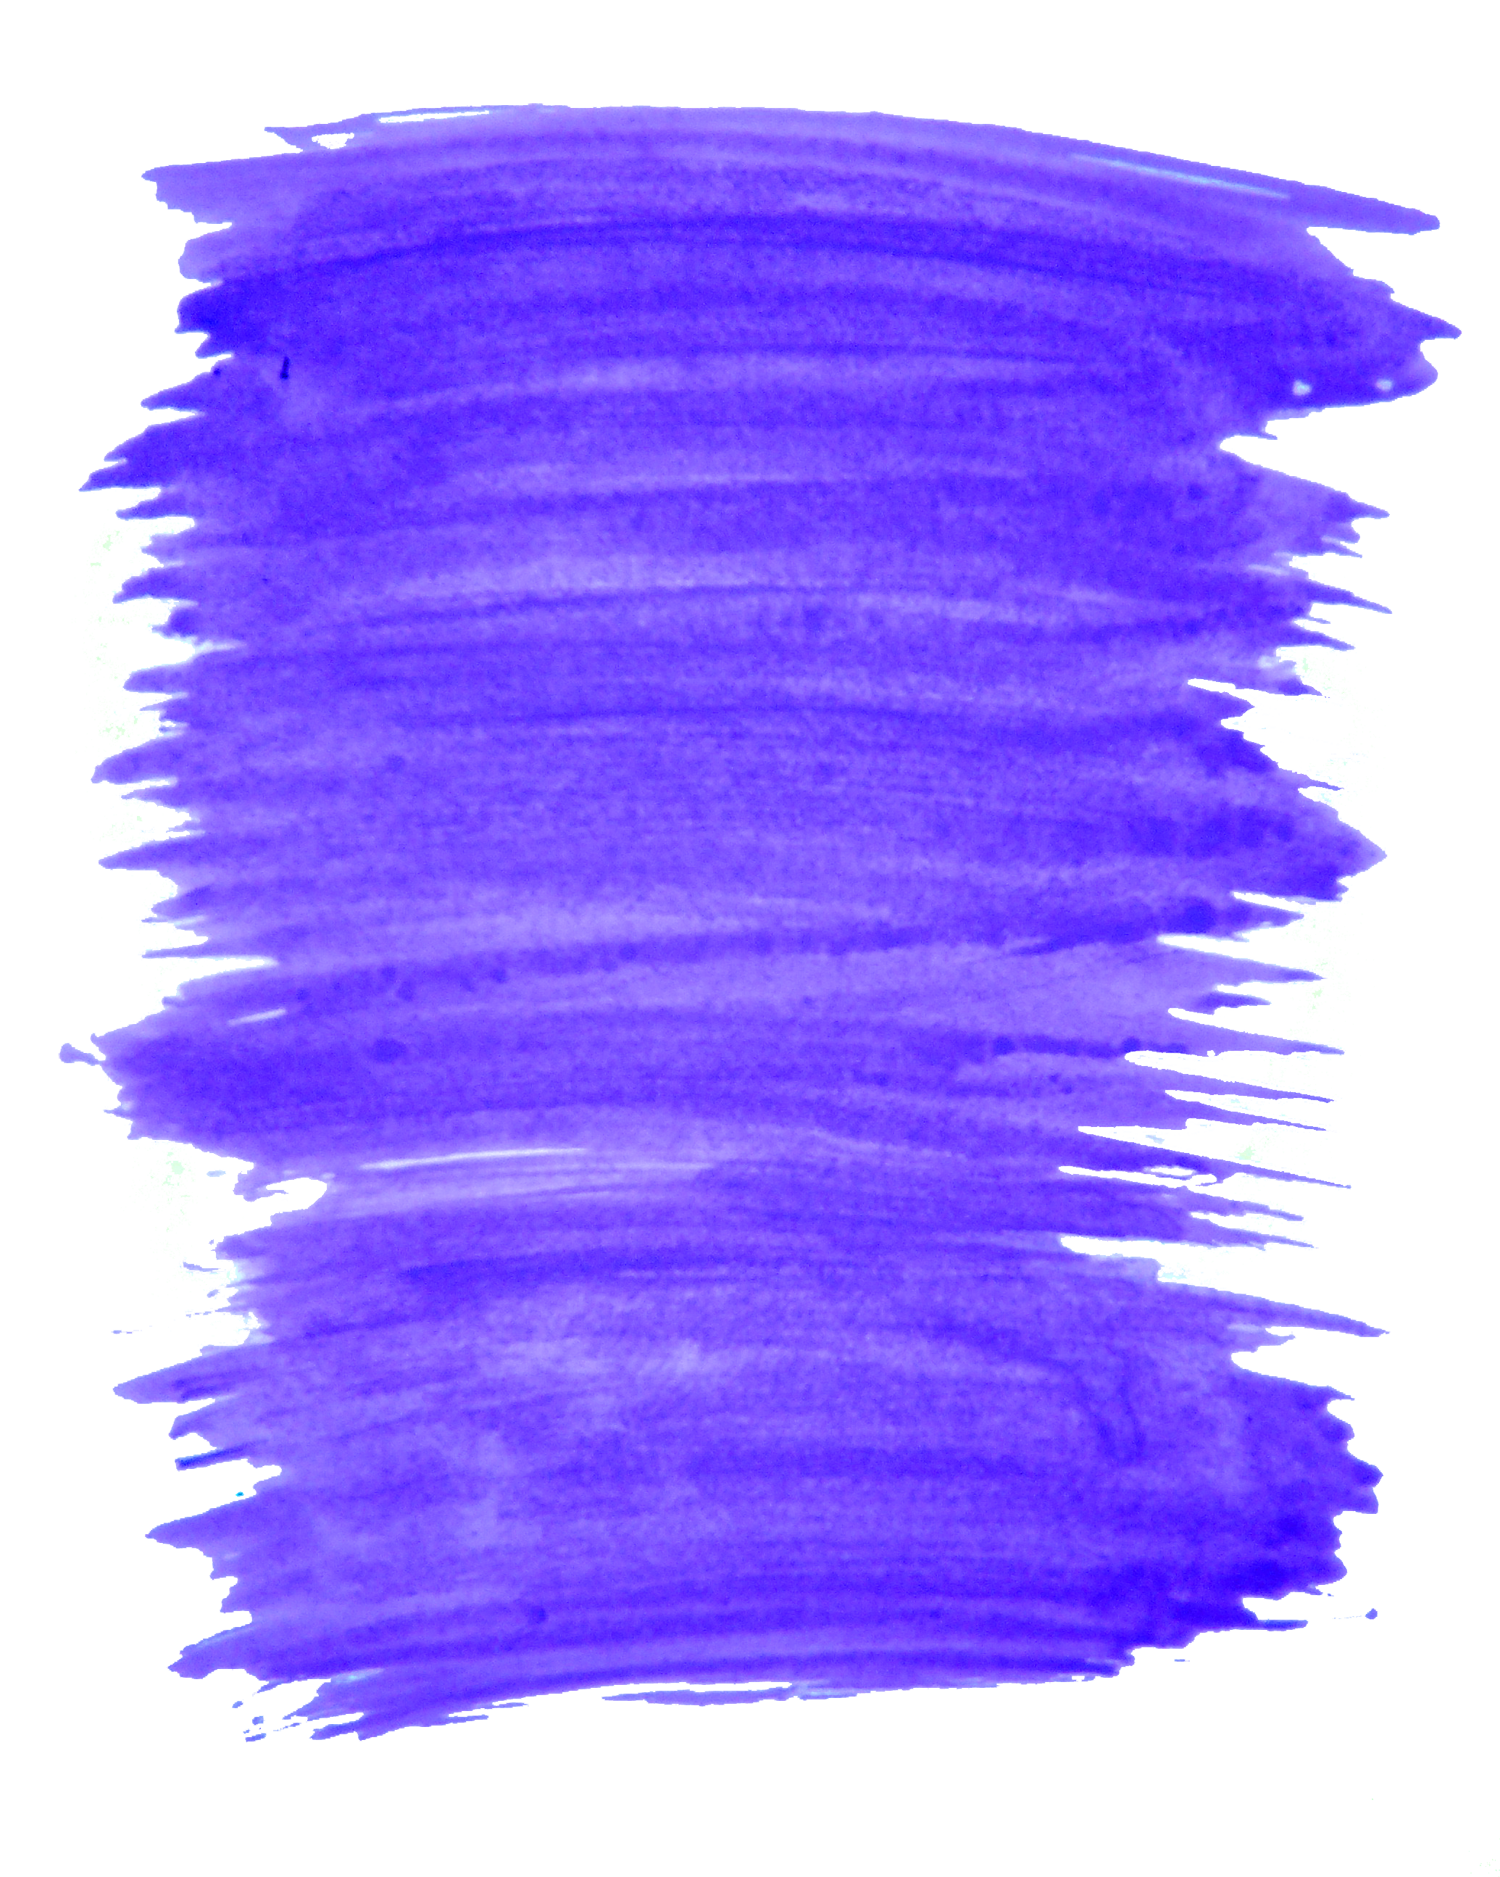 Purple background png. Splash free vector clipart